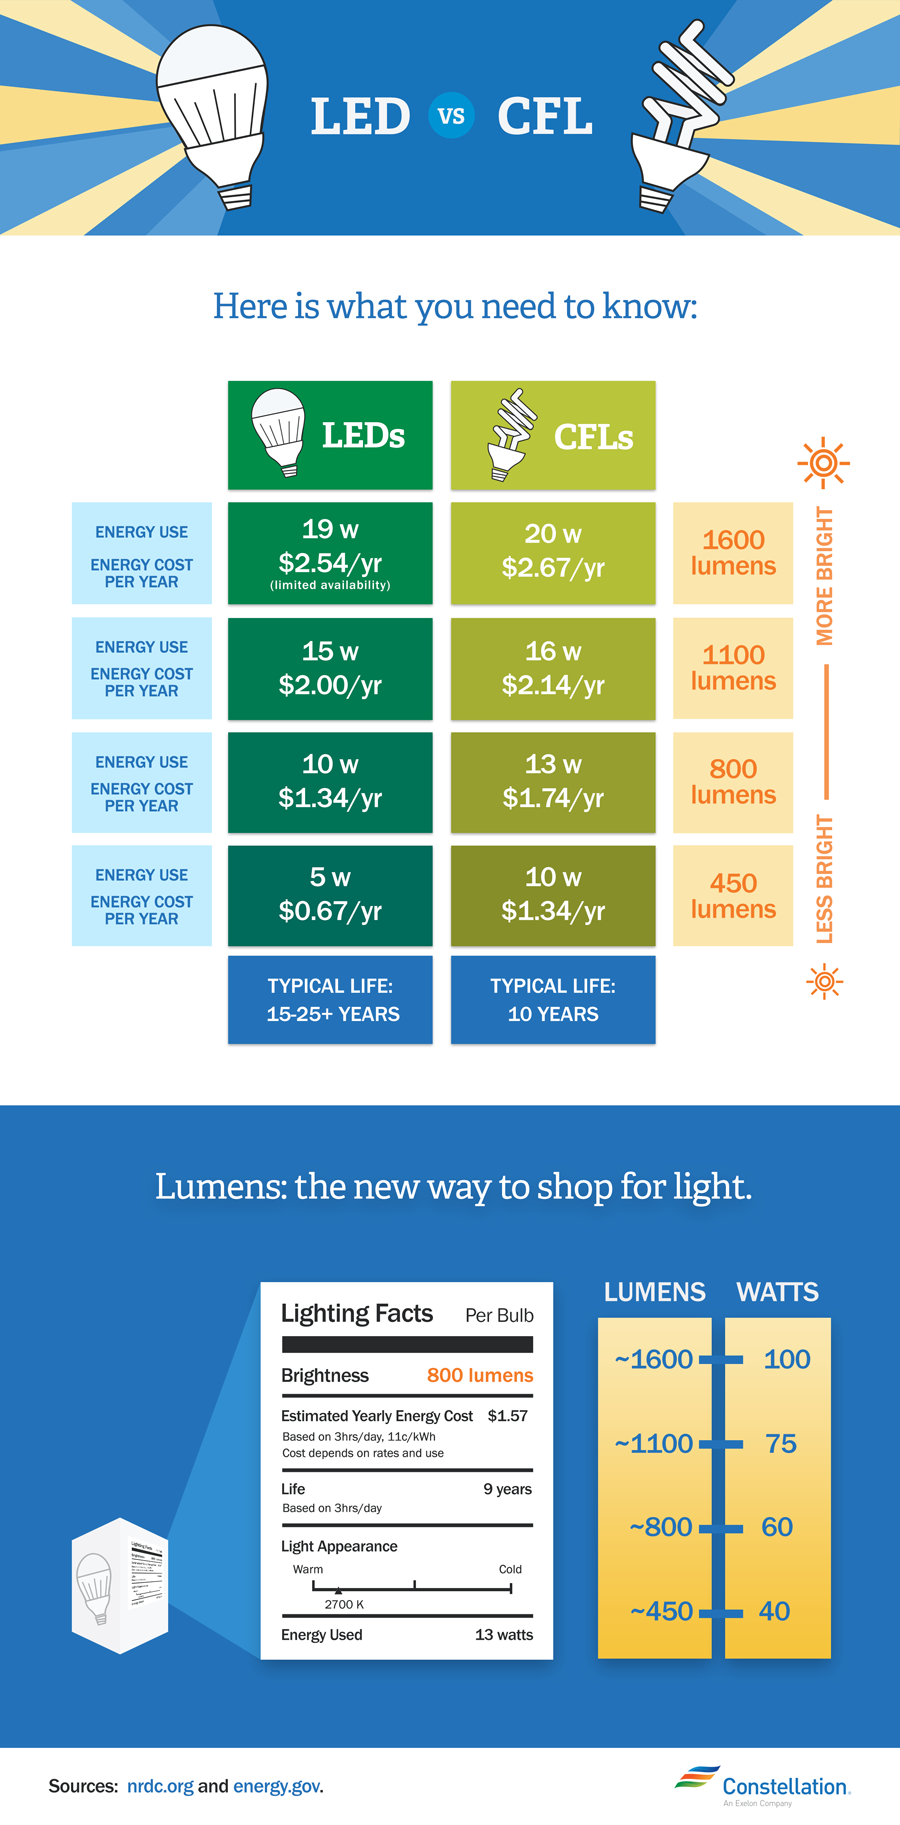 Lighting Solutions additionally LED Information further Led Econ as well 558 moreover 19032975 How Hot Are Led Light Bulbs. on cfl lumens chart